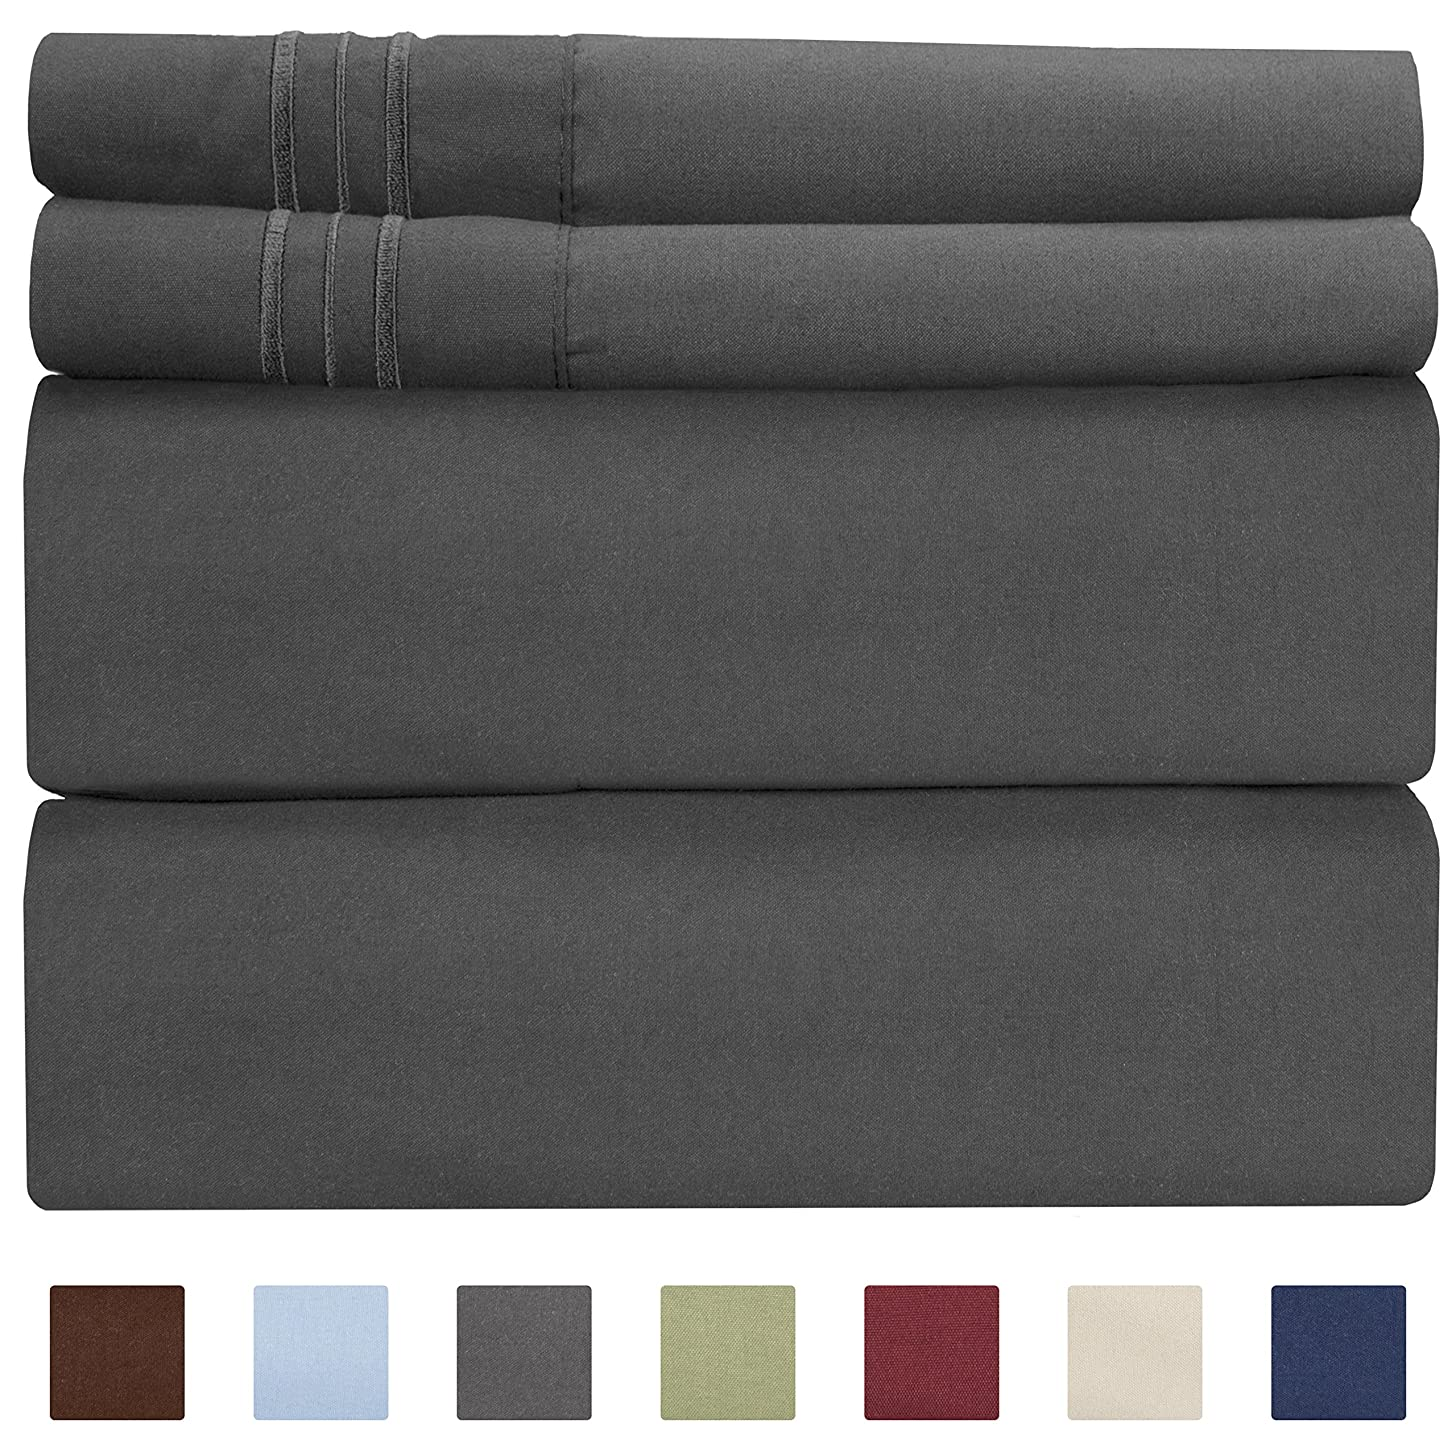 Queen Size Sheet Set - 4 Piece - Hotel Luxury Bed Sheets - Extra Soft - Deep Pockets - Easy Fit - Breathable & Cooling Sheets - Wrinkle Free - Comfy – Dark Grey Bed Sheets - Queens Sheets – 4 PC